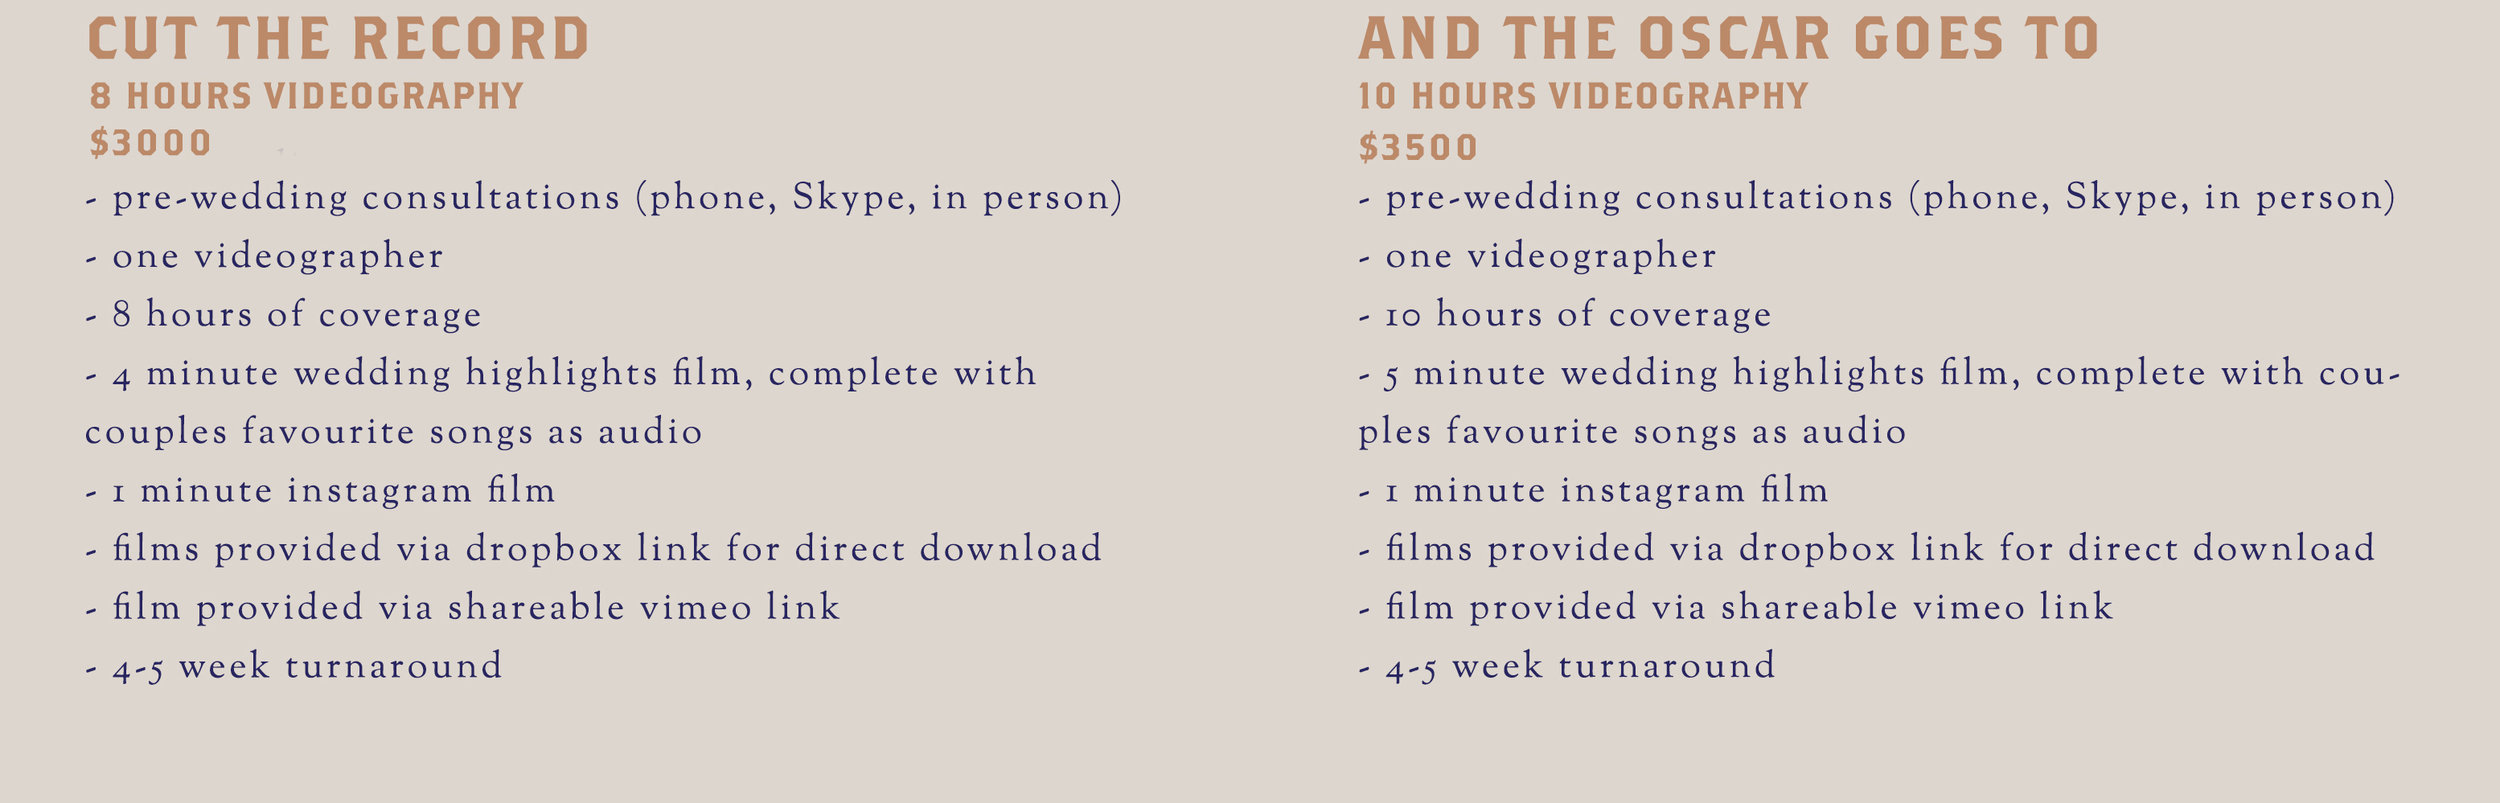 AUS Videography Packages.jpg